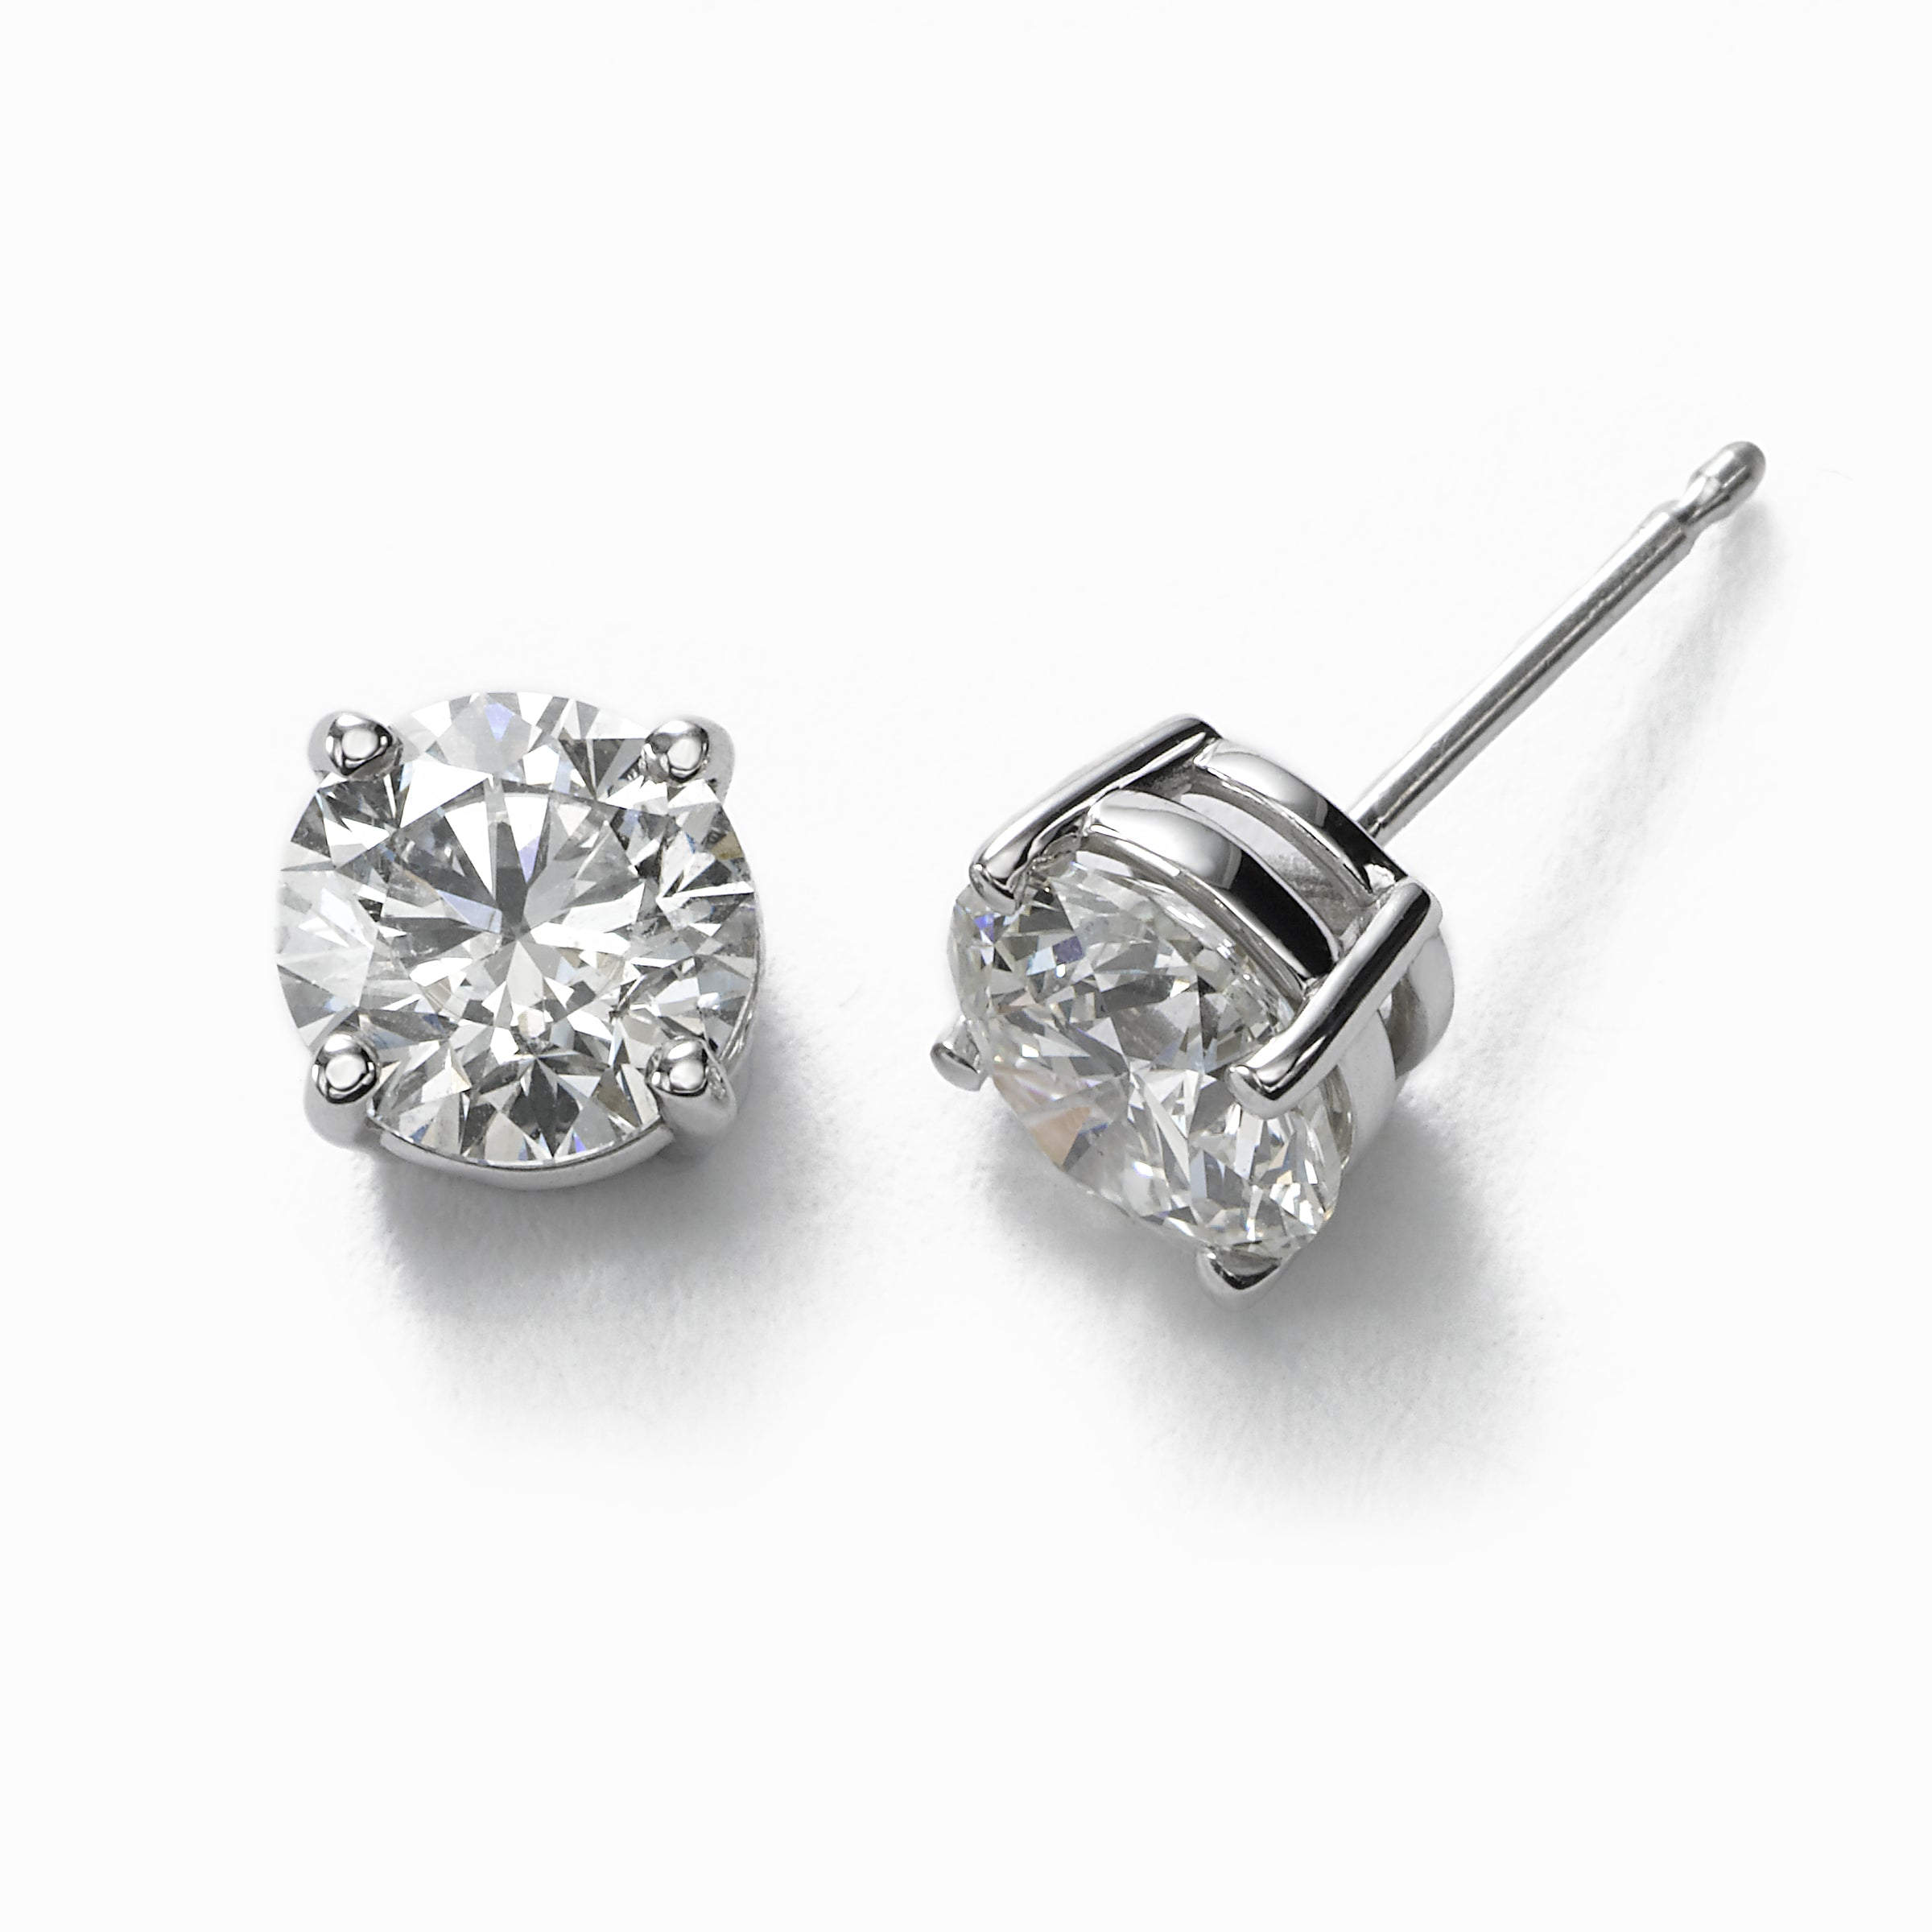 Diamond Stud Earrings, 2.05 Carats Total, J-SI2, 14K White Gold